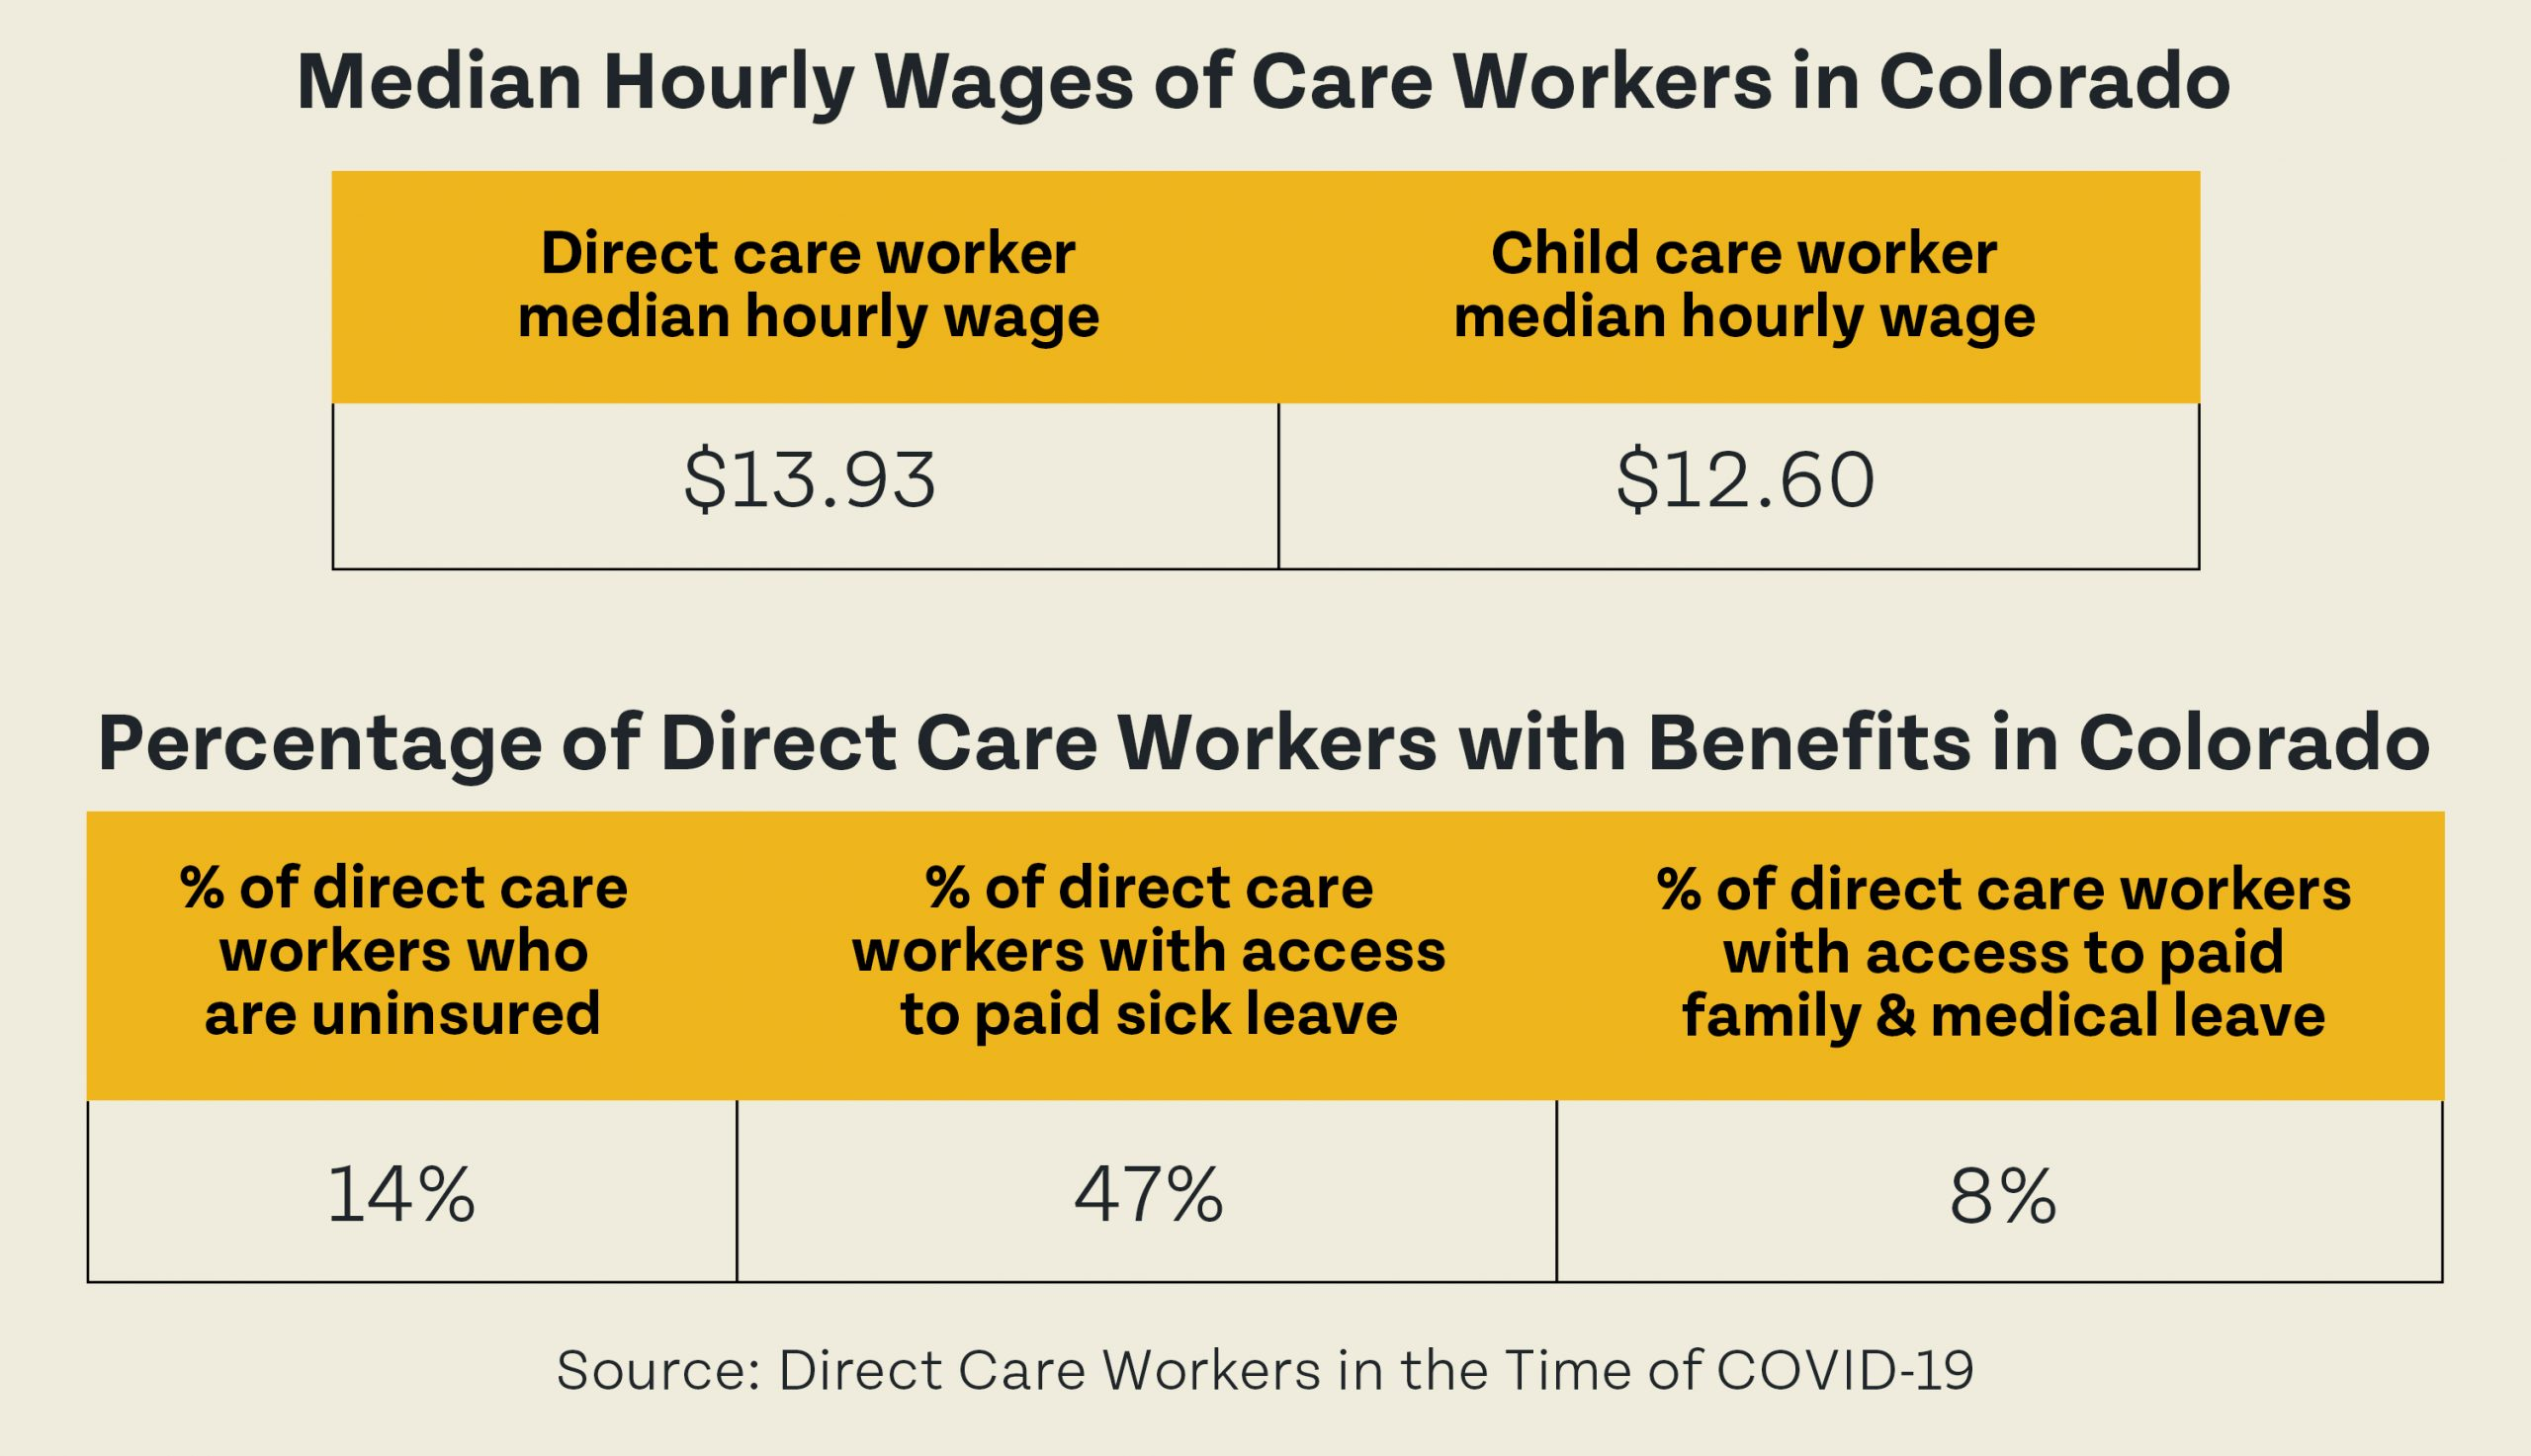 Median Hourly Wages of Care Workers in Colorado & Percentage of Direct Care Workers With Benefits in Colorado